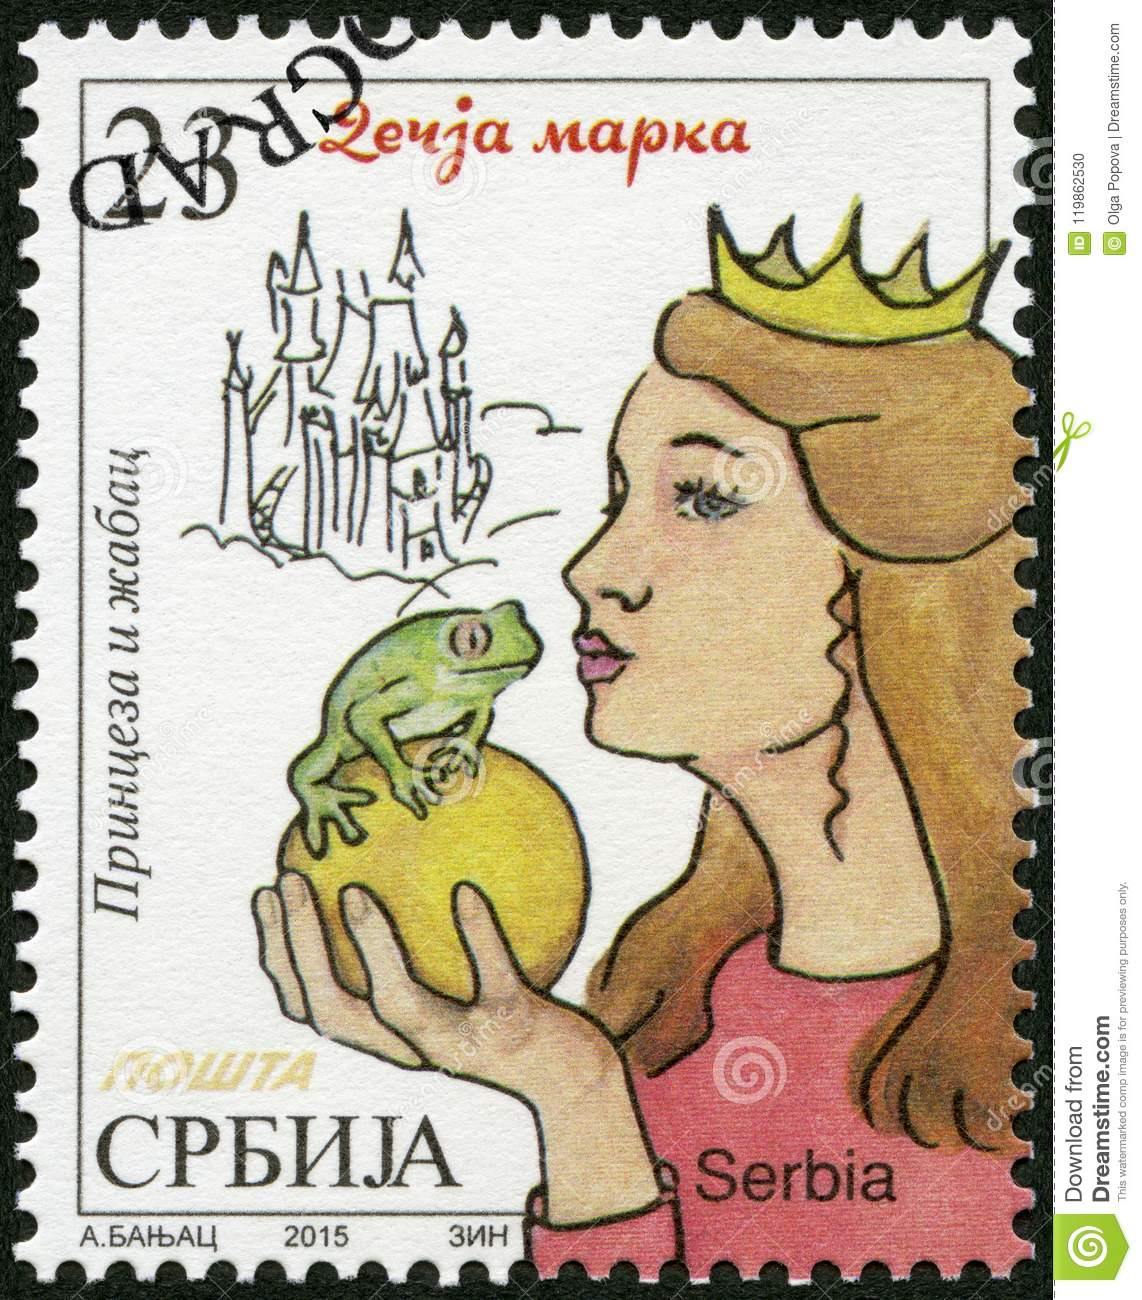 Serbia 2015 Shows The Princess And The Frog Series Characters